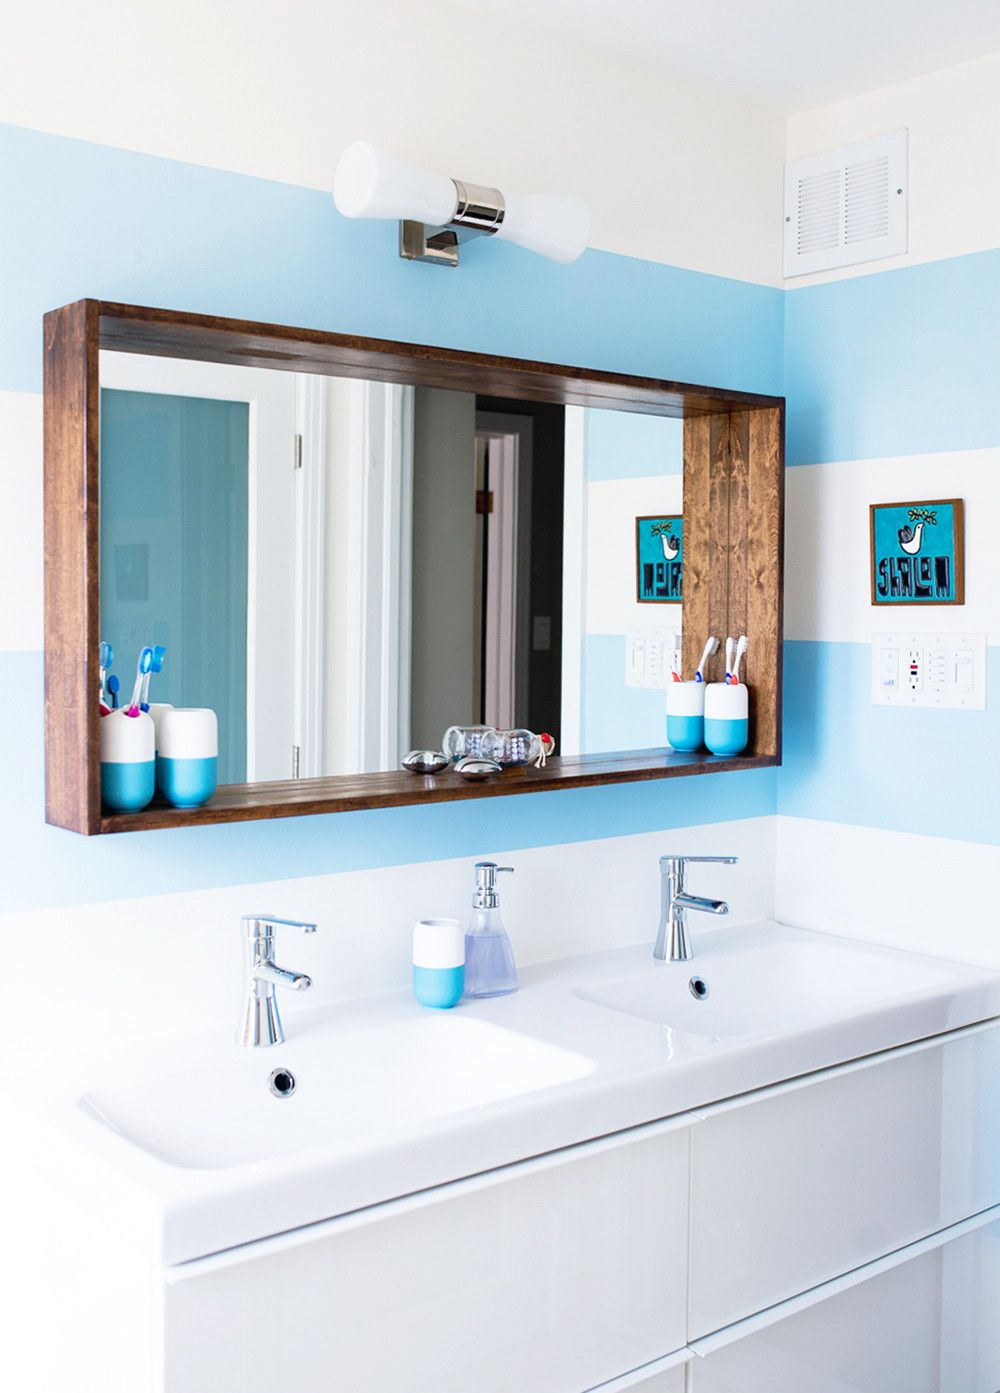 17 Bathroom Mirrors Ideas Decor Design Inspirations For Bathroom Big Sea Bright And